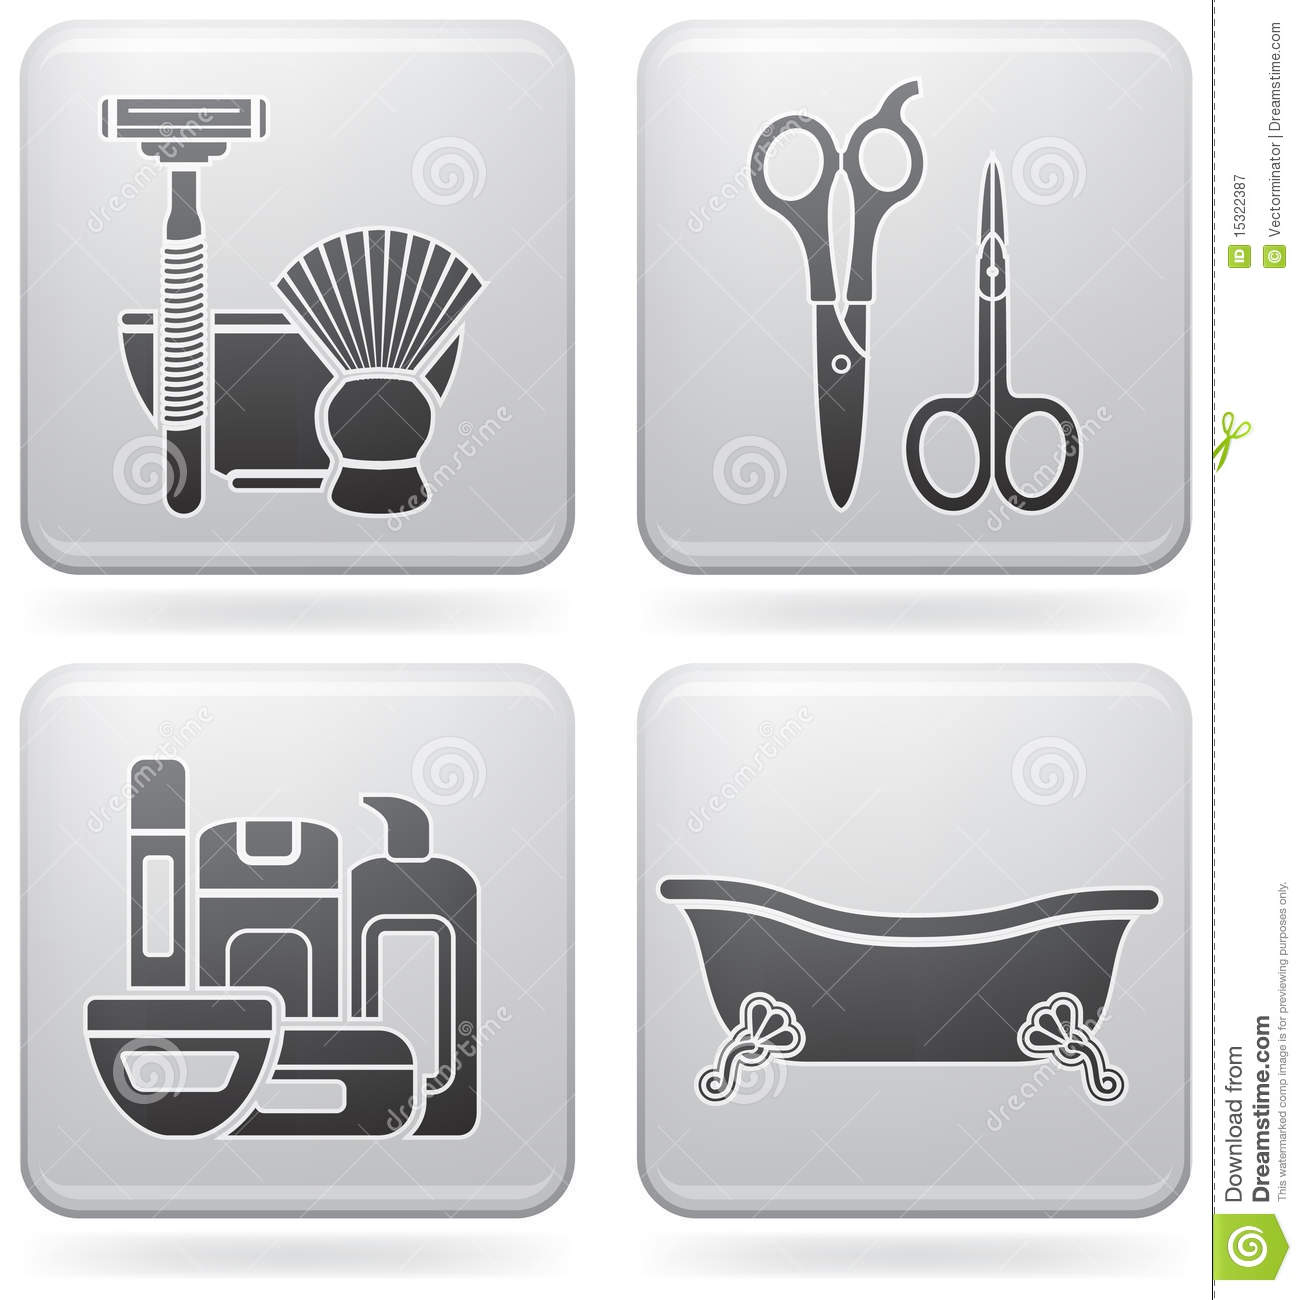 Bath utensils royalty free stock photography image 15322387 for Bathroom utensils